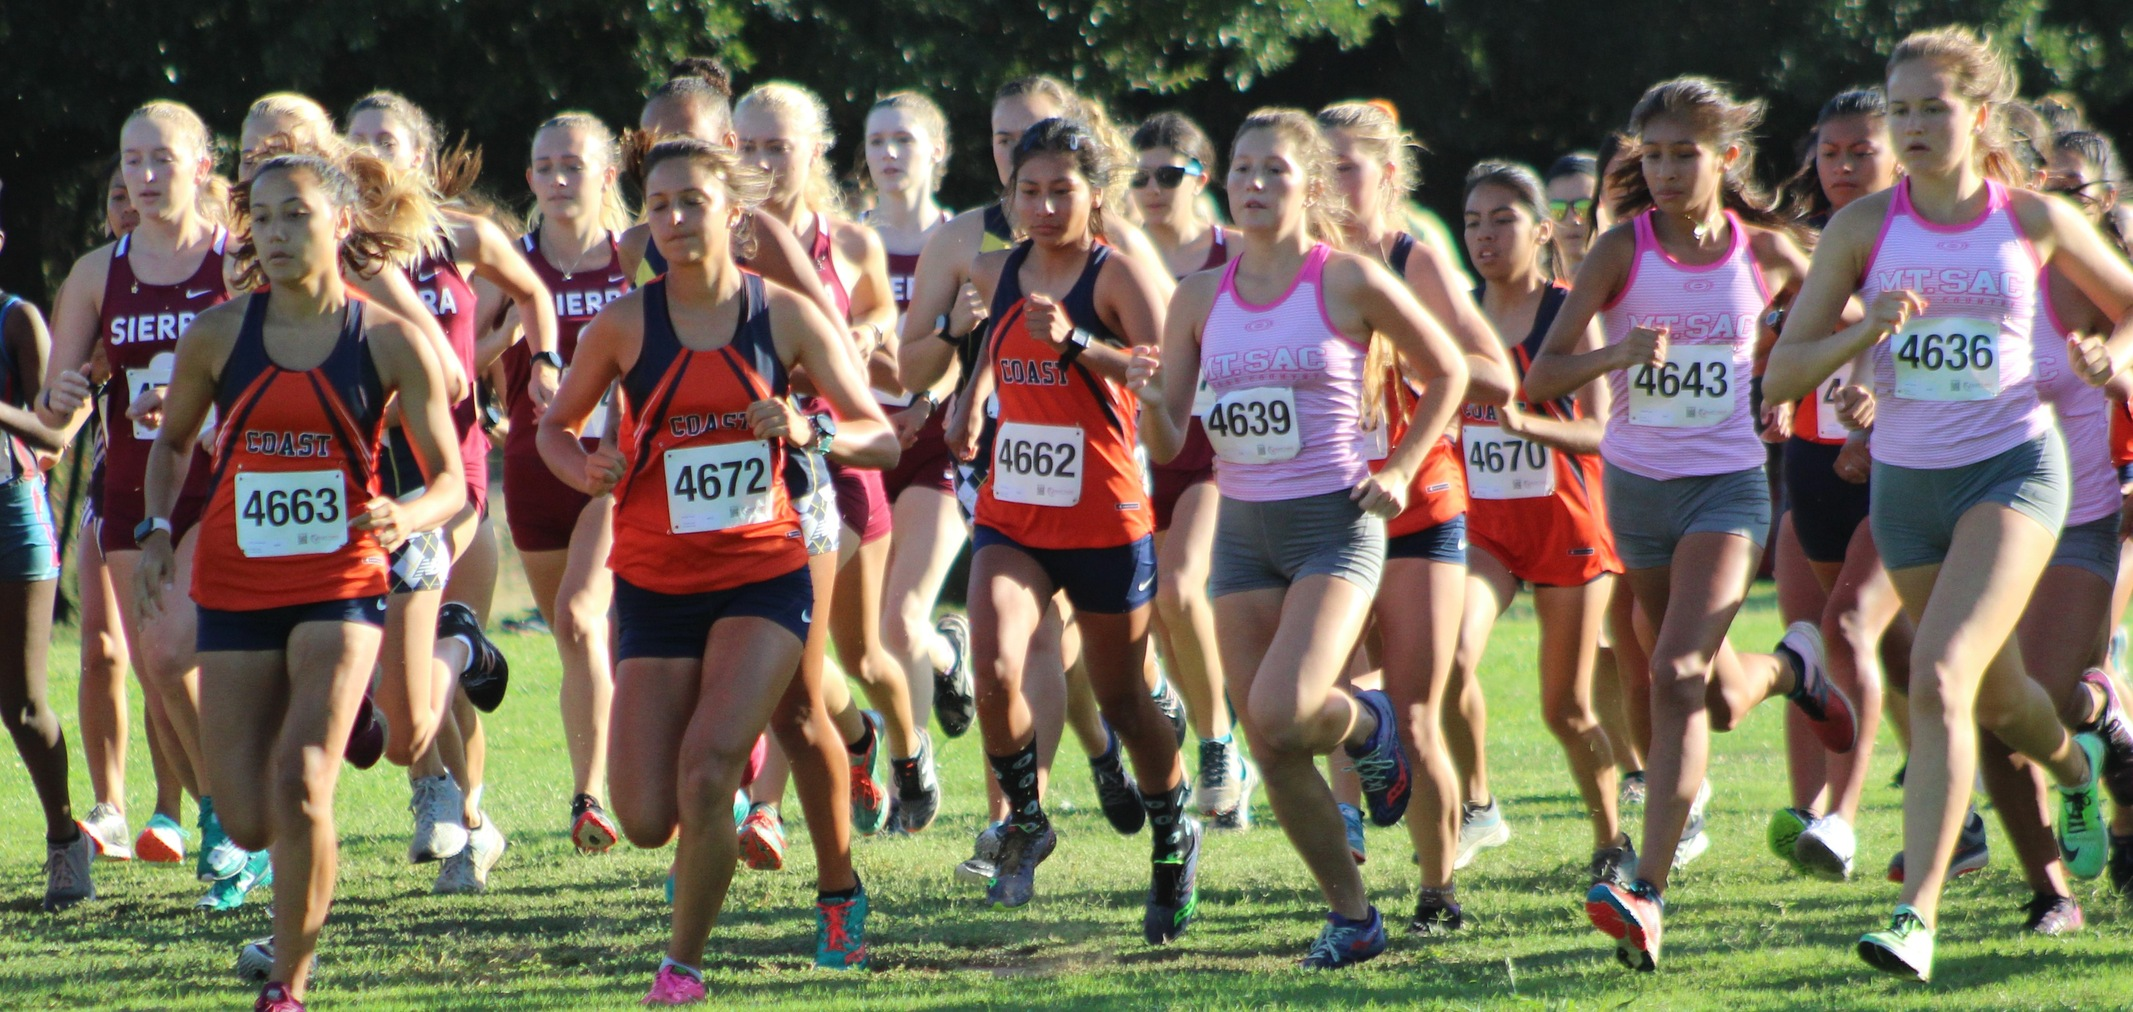 OCC women take third overall at GWC Invitational